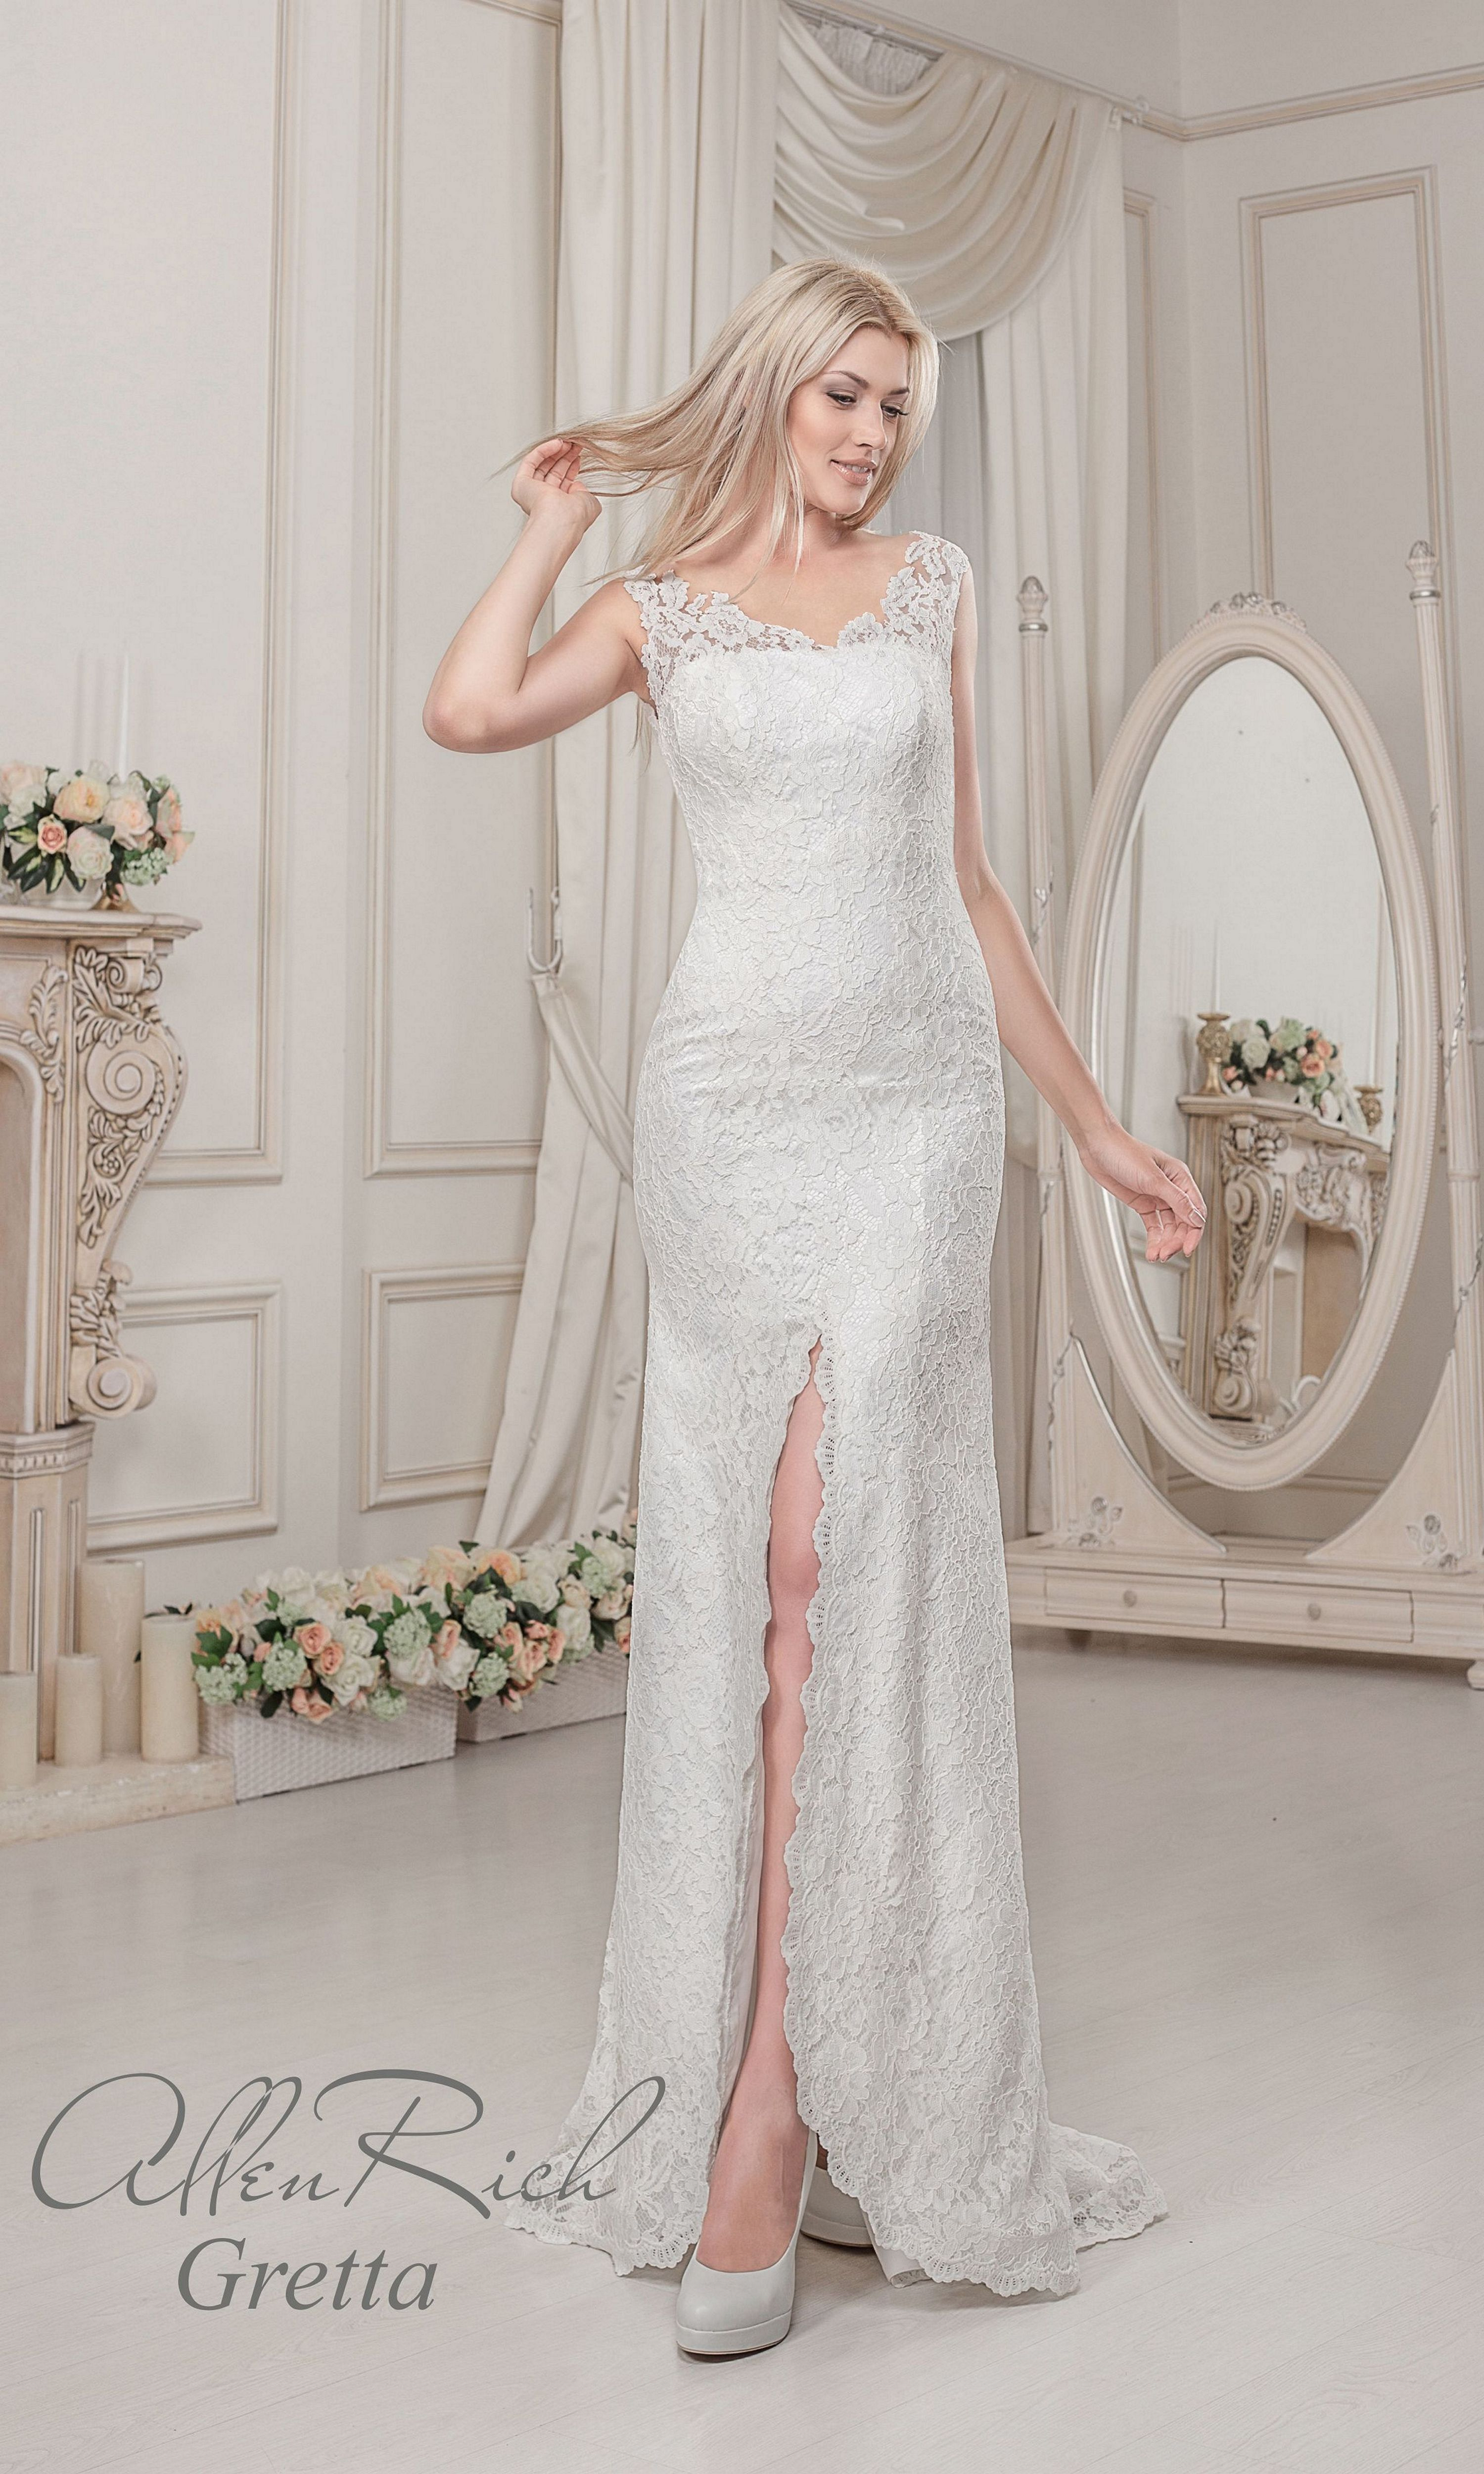 Gretta wedding dress